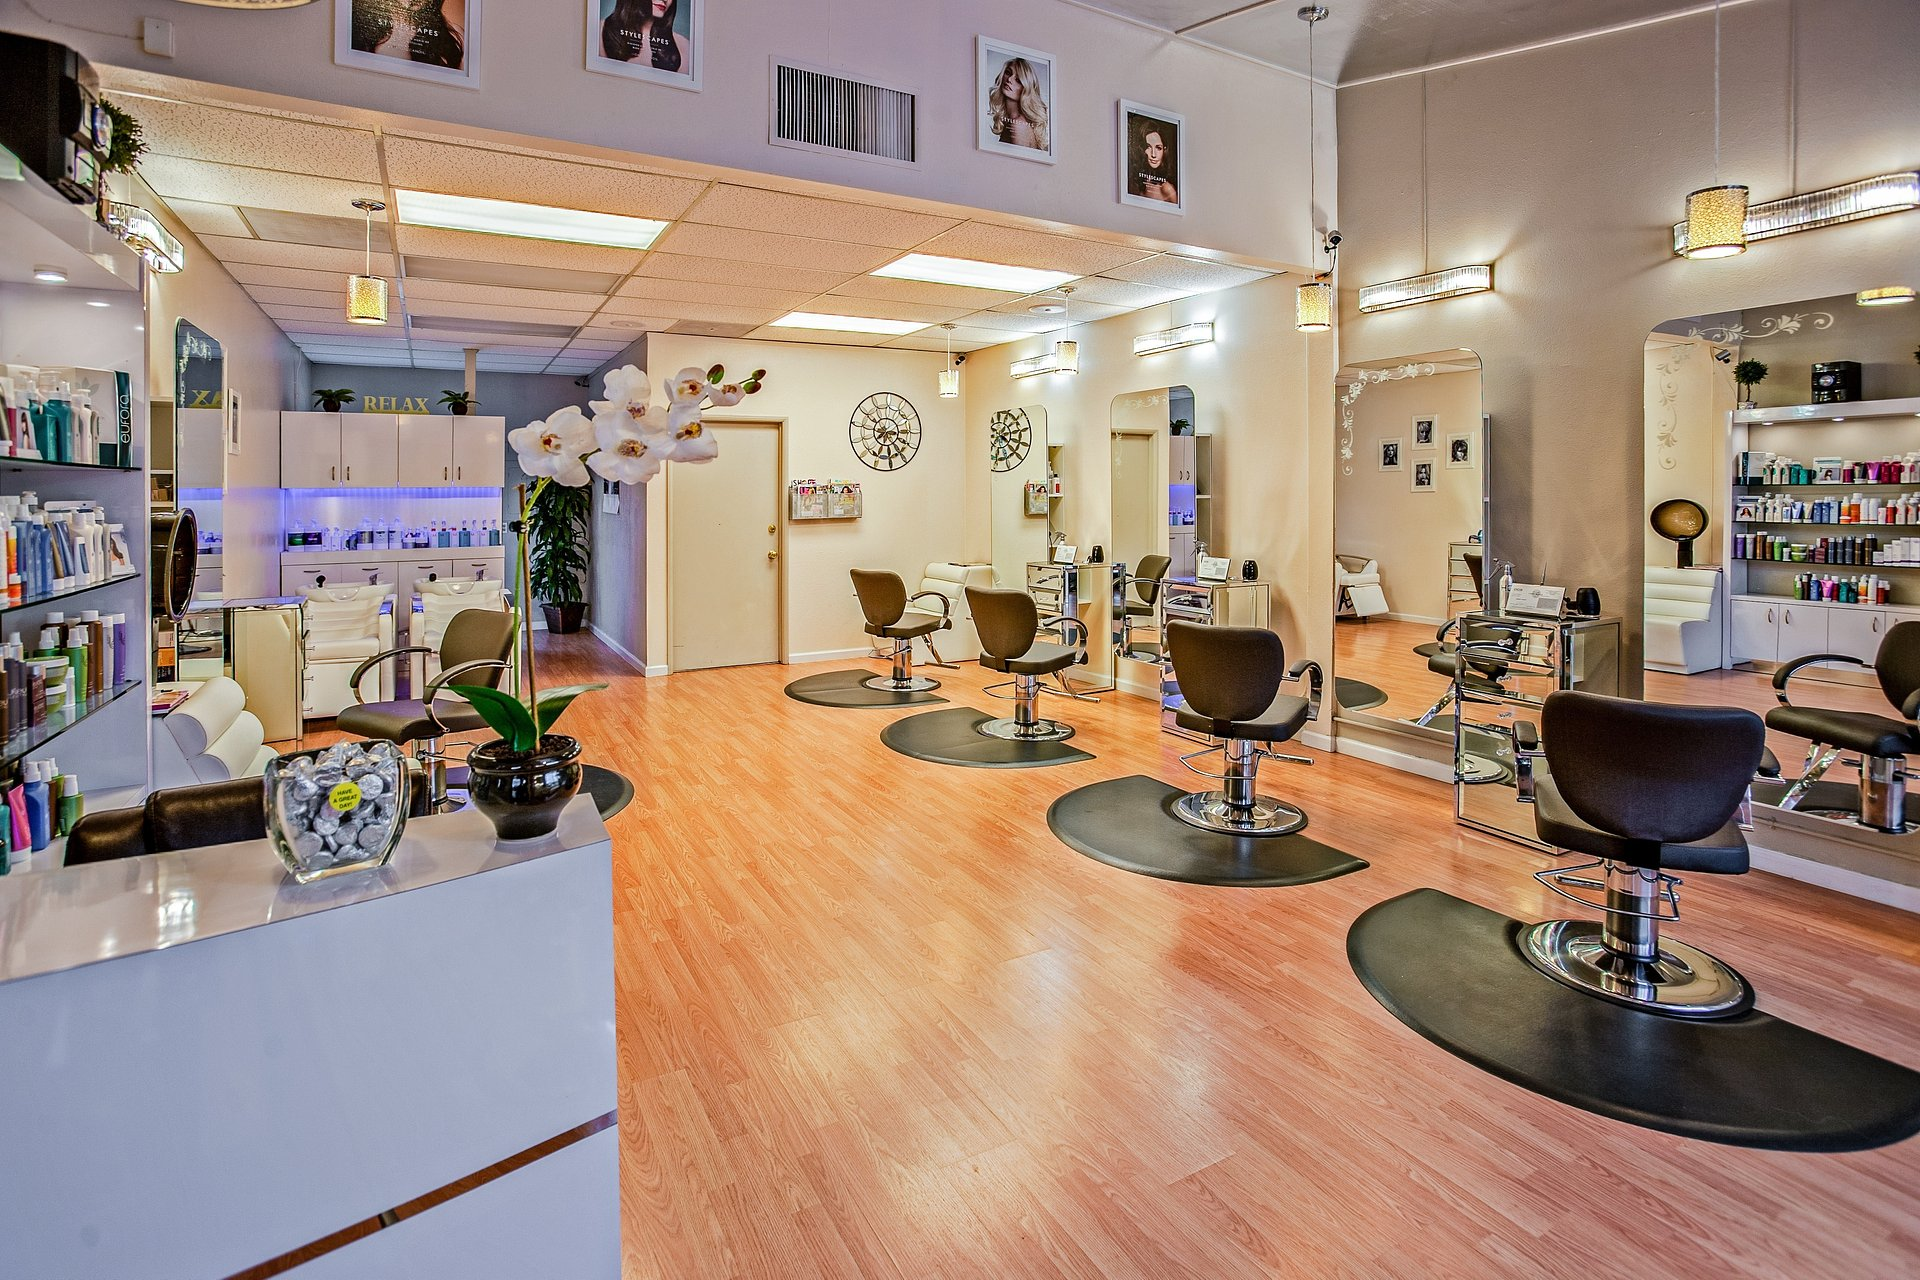 Hair & Beauty Salons, Barbersops Can Optimize New Intimate Experience